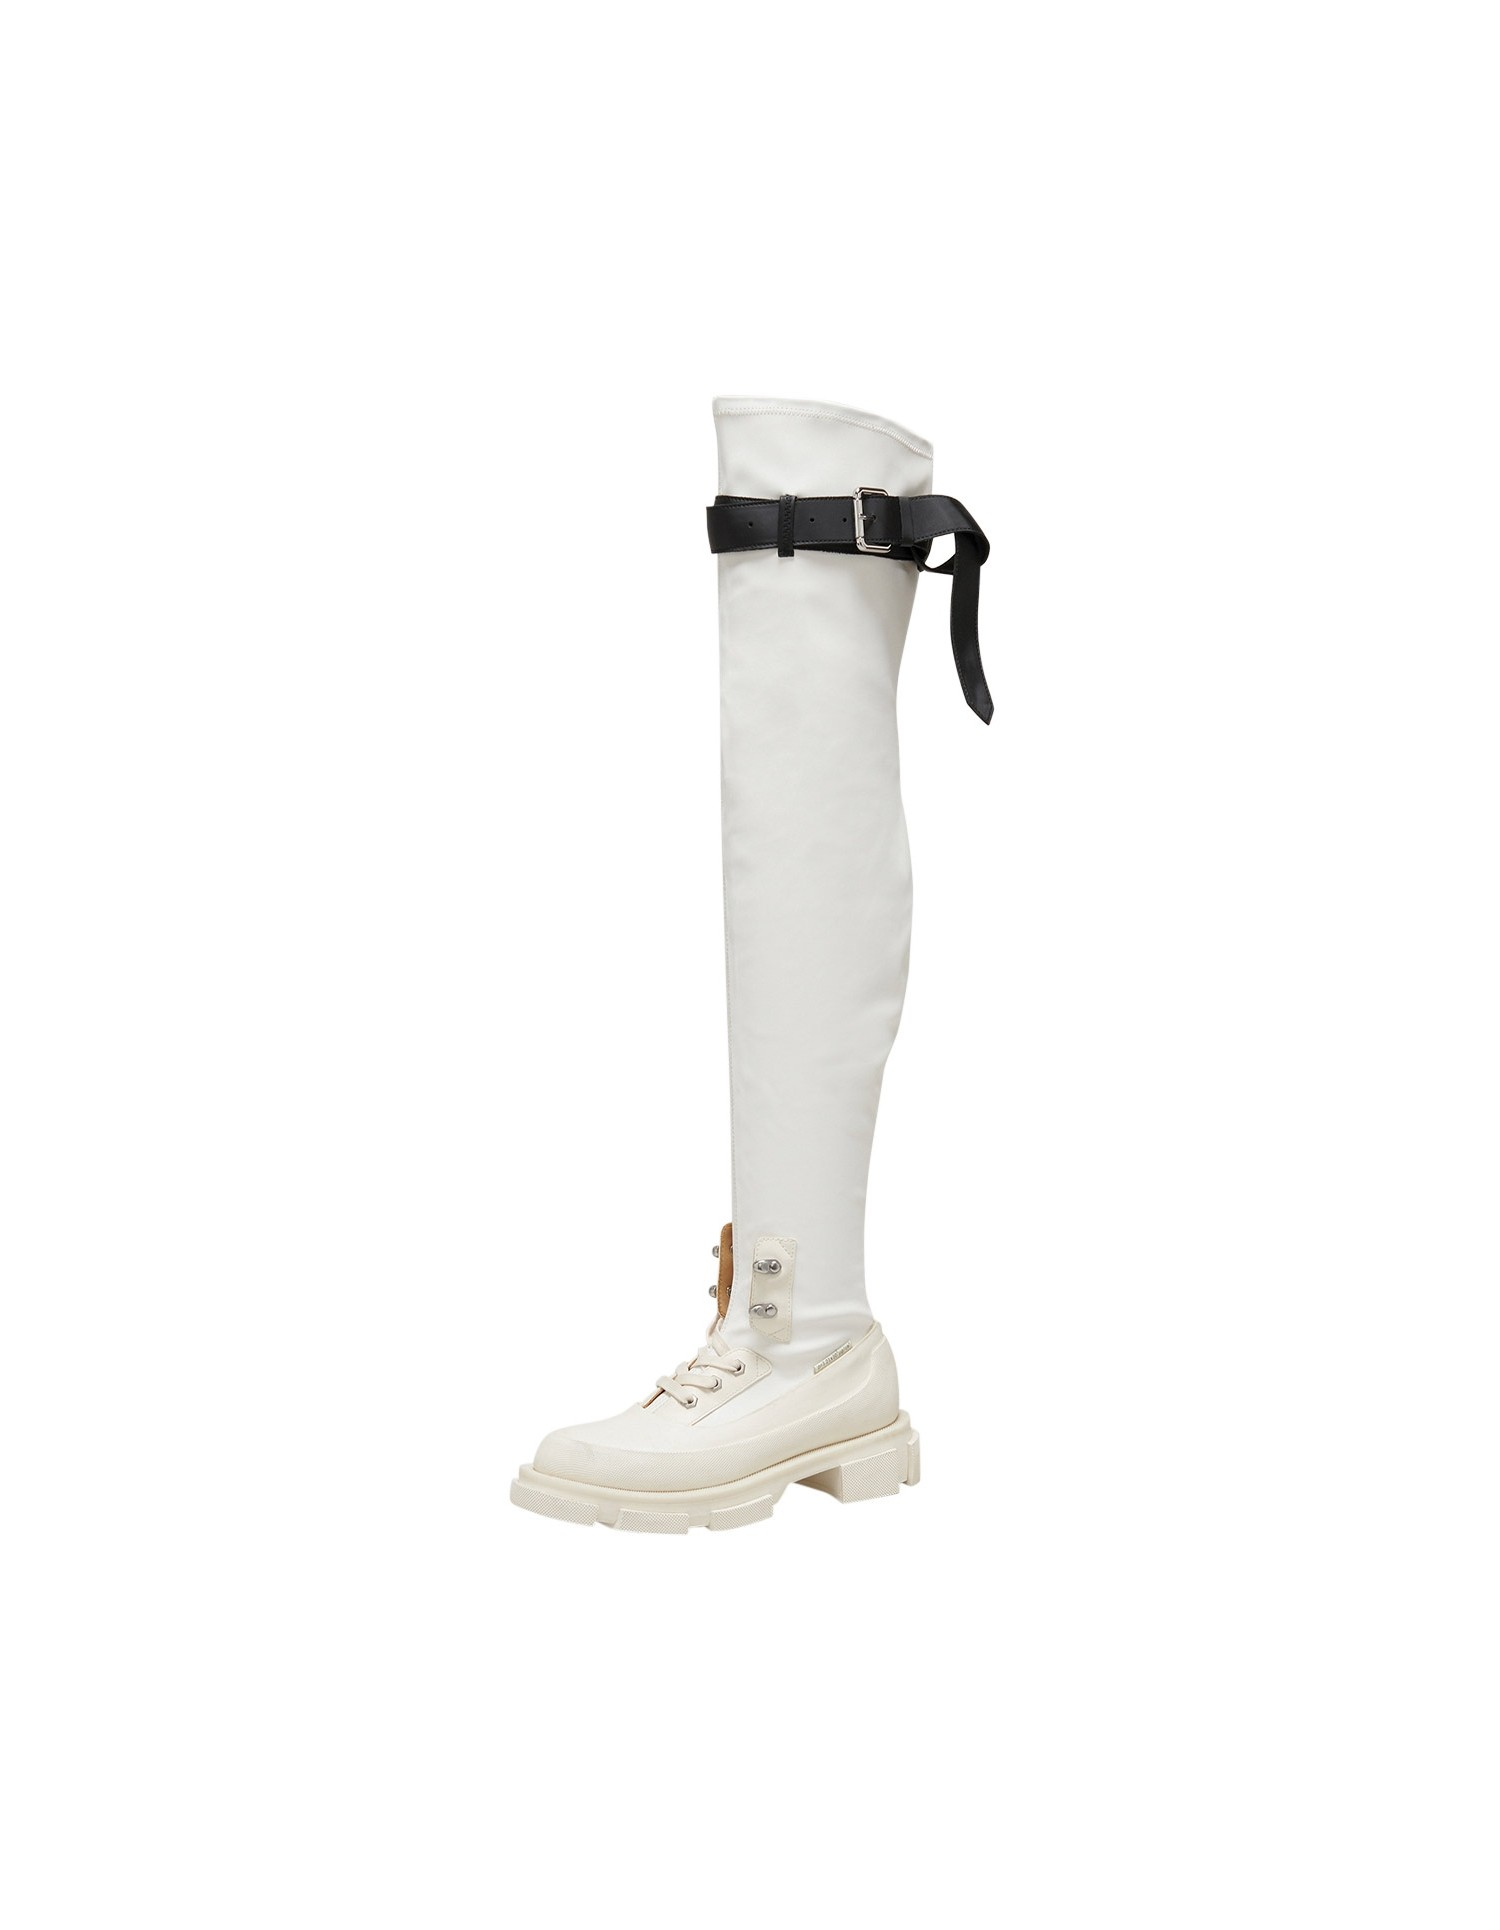 Both x MONSE Gao Thigh High Boots in White and Black Left Side Angle View